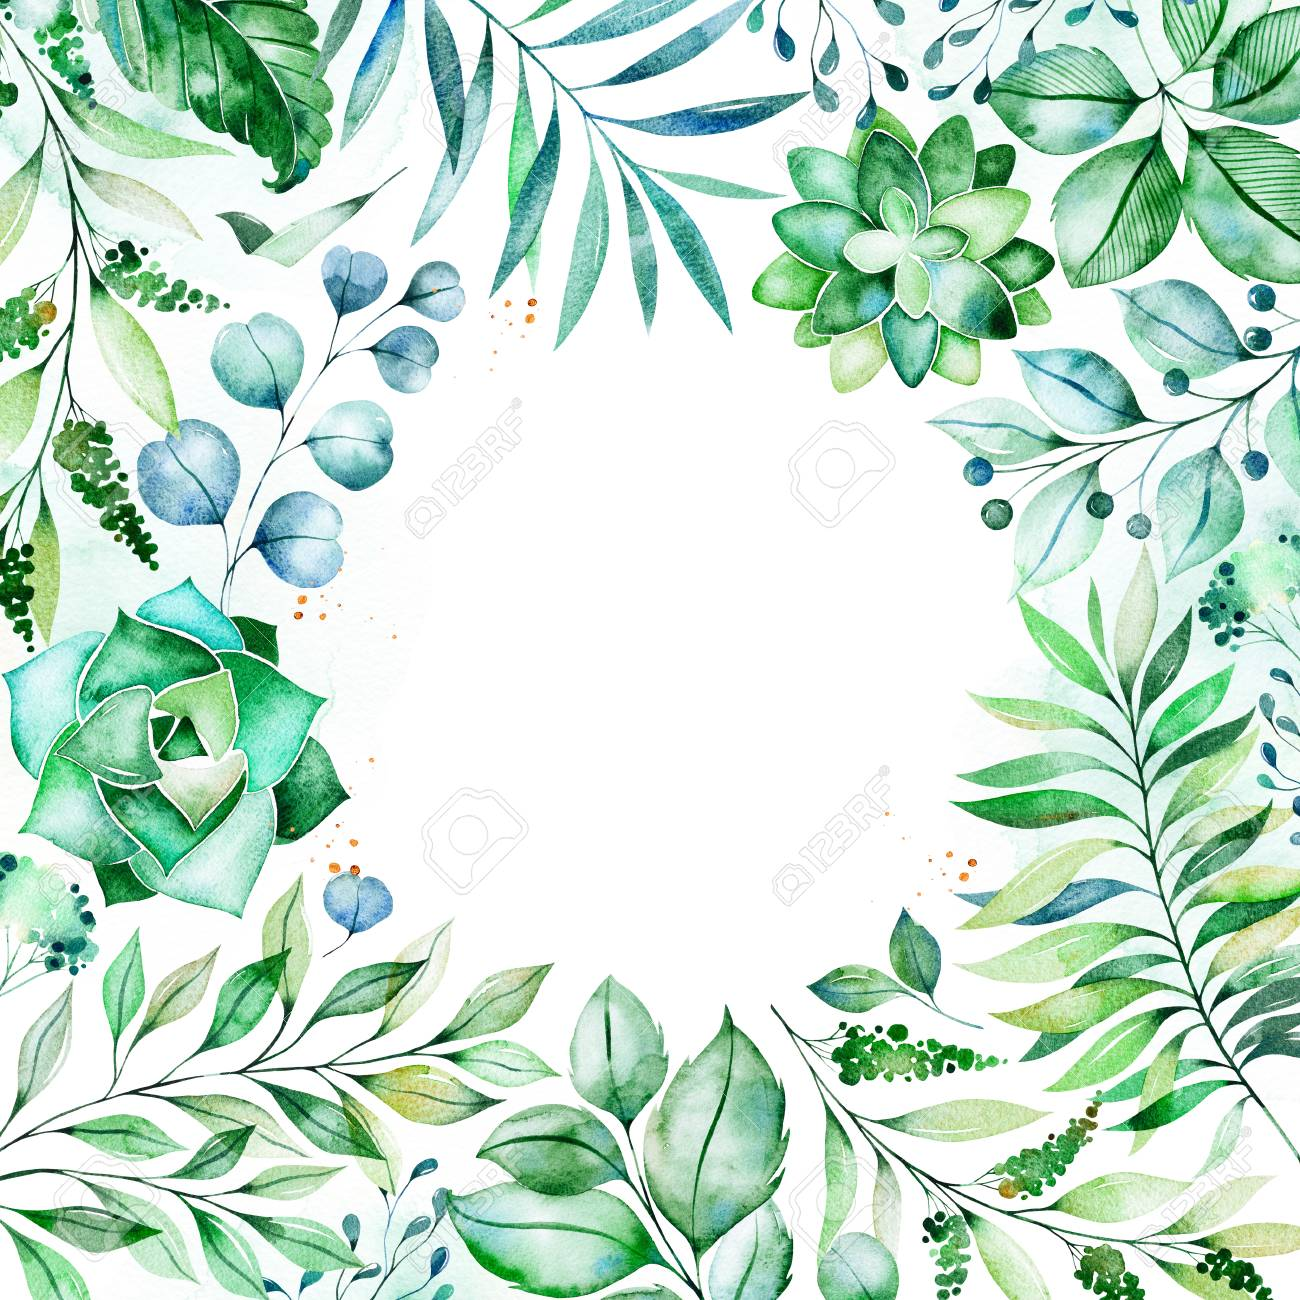 Watercolor Green Illustratione Made Greeting Card With Succulent